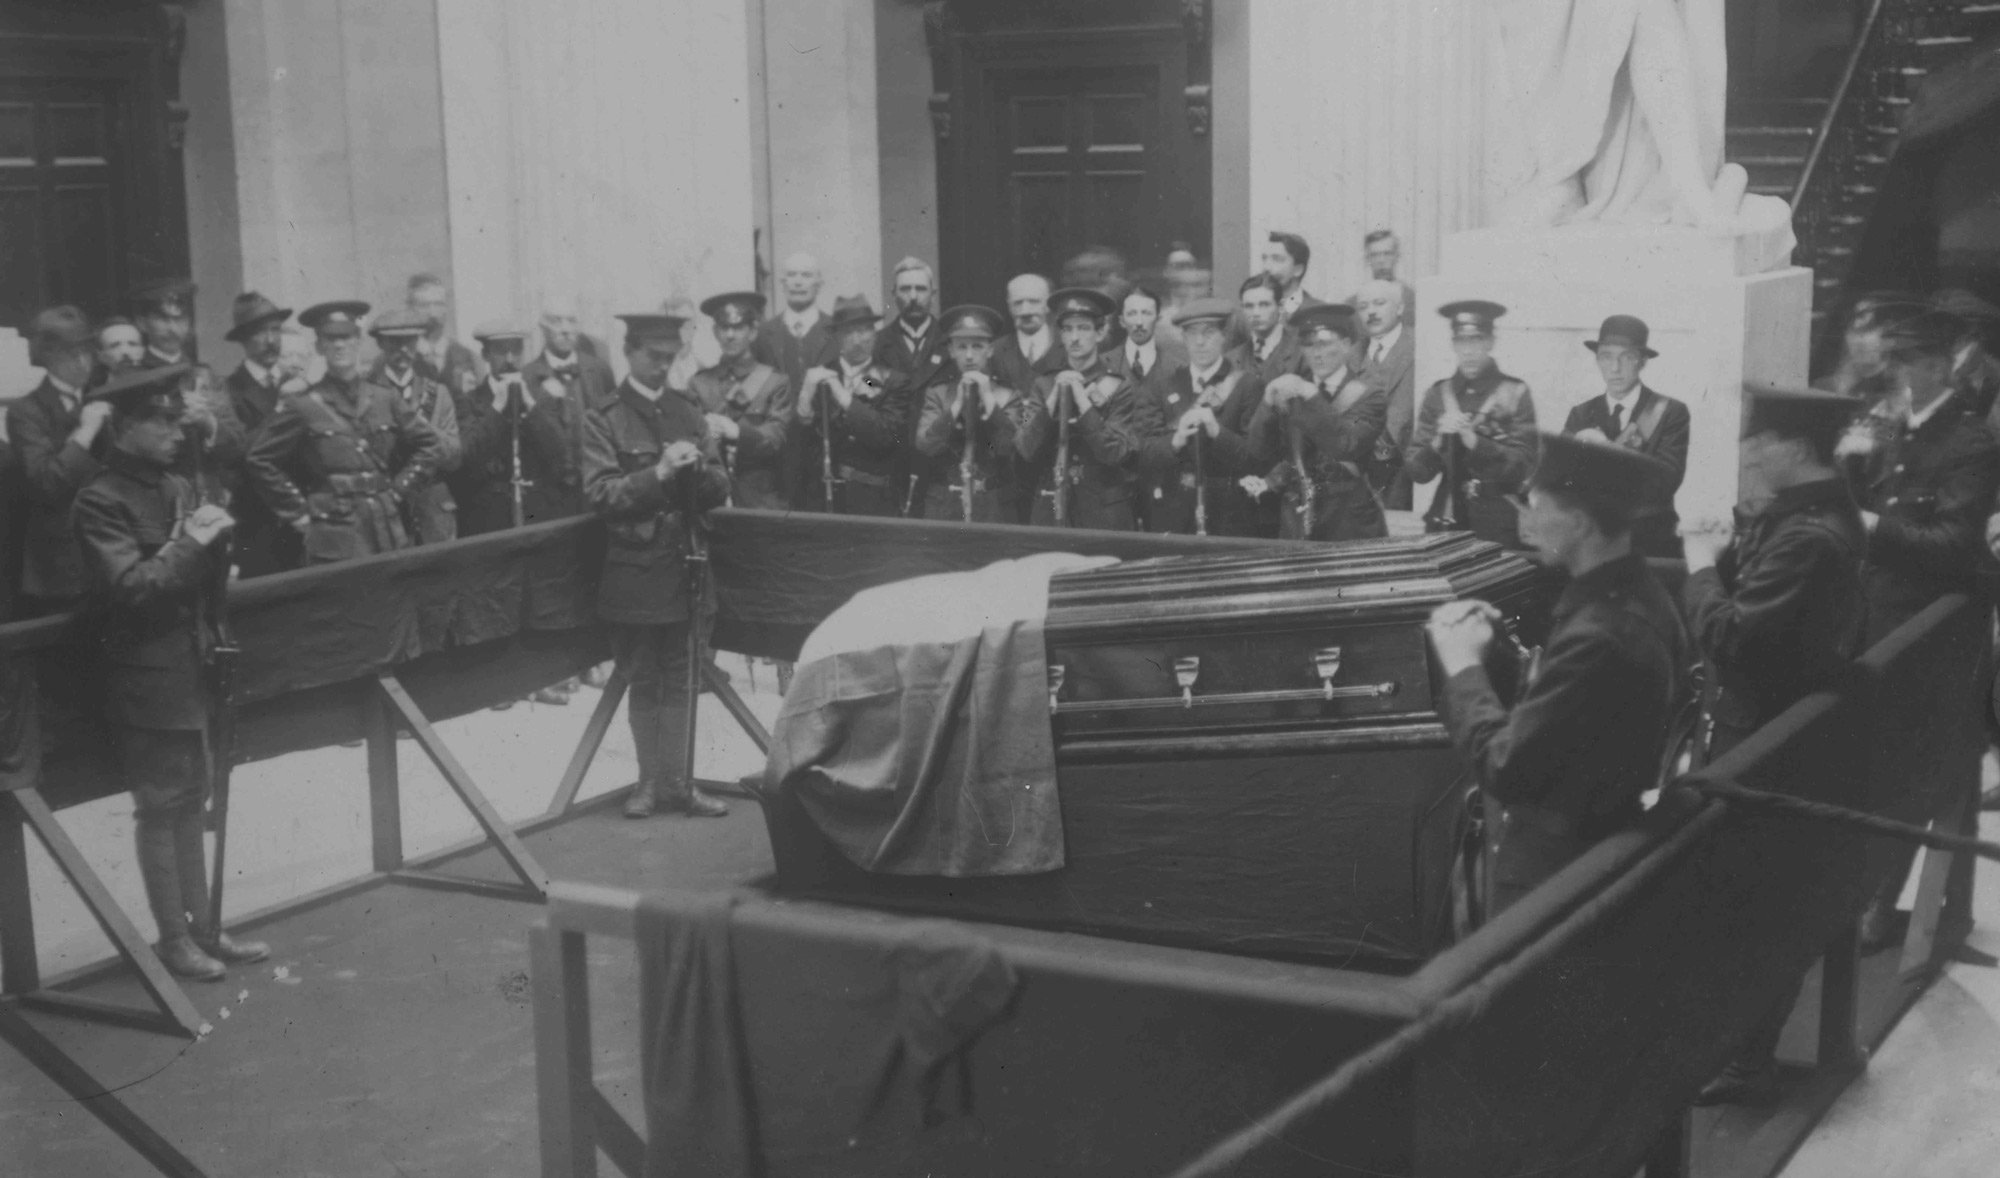 O'Donovan Rossa's remains arrive in Dublin